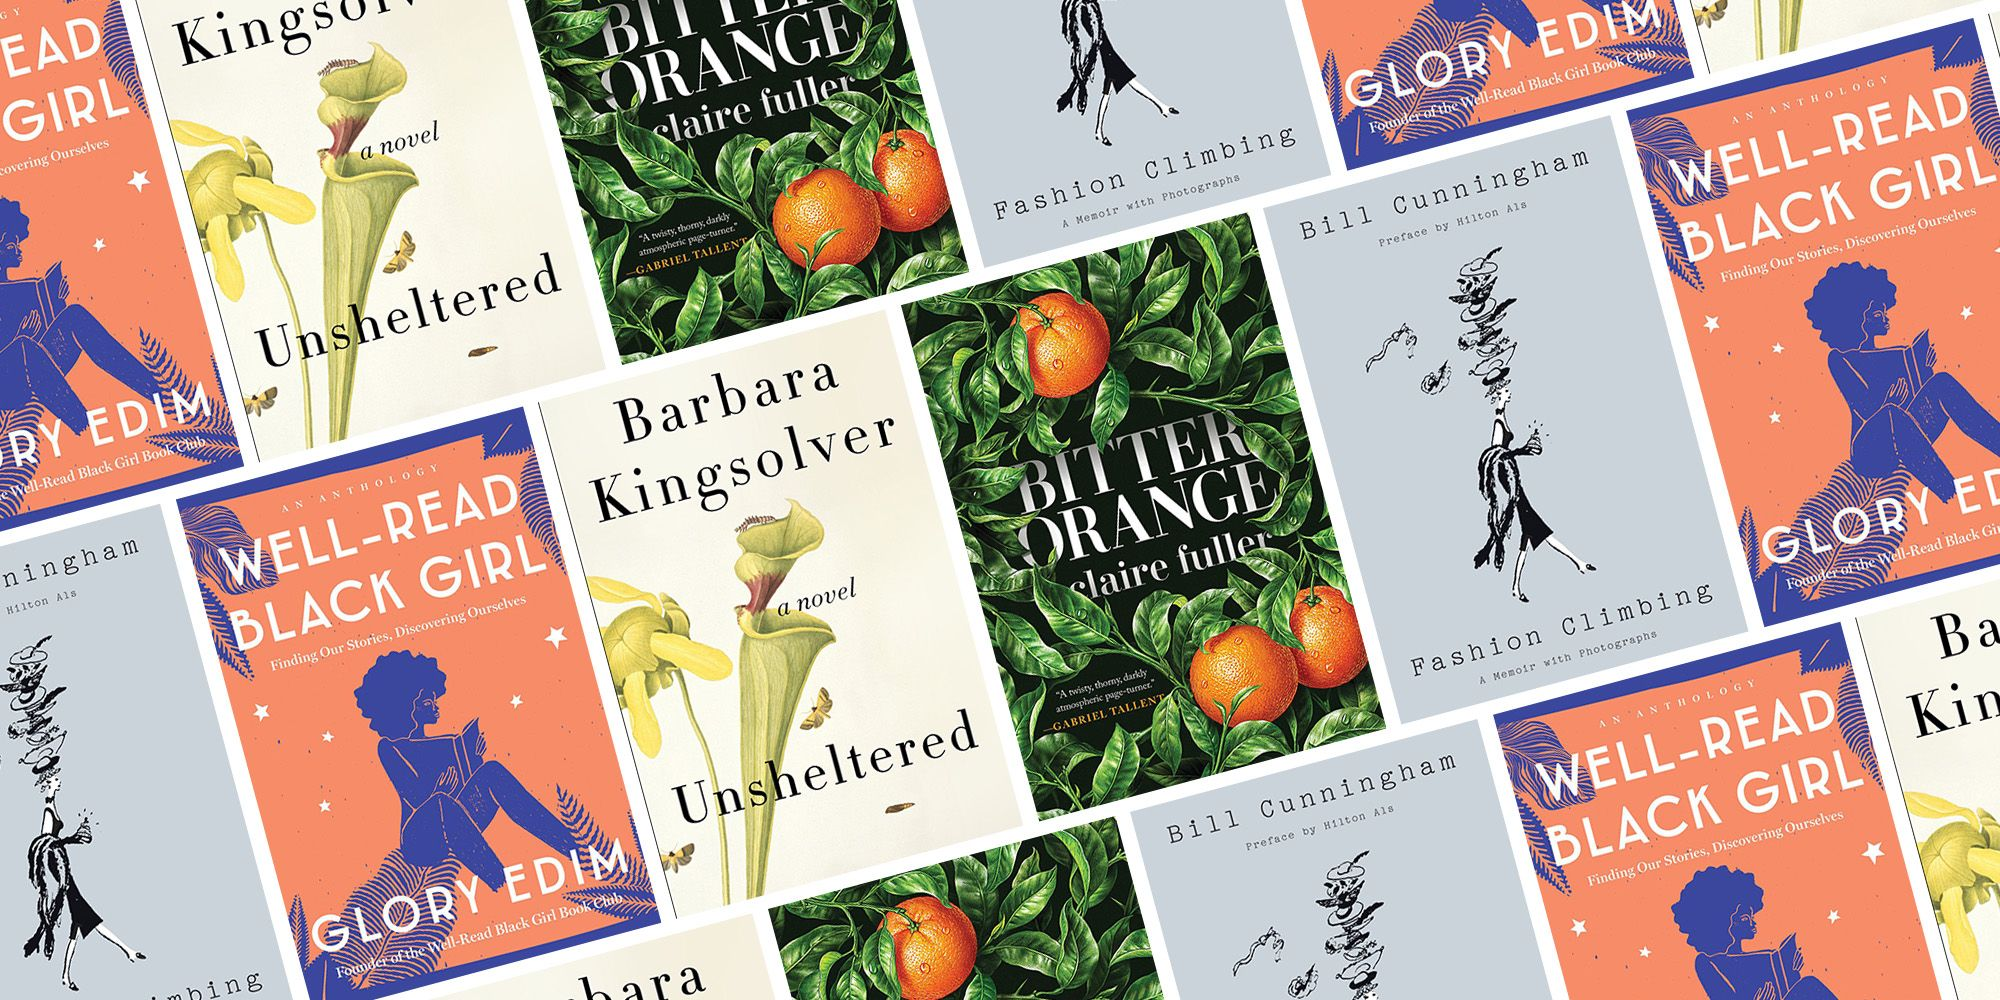 28 Best Fall Books Of 2018 Top New Reads For This Autumn